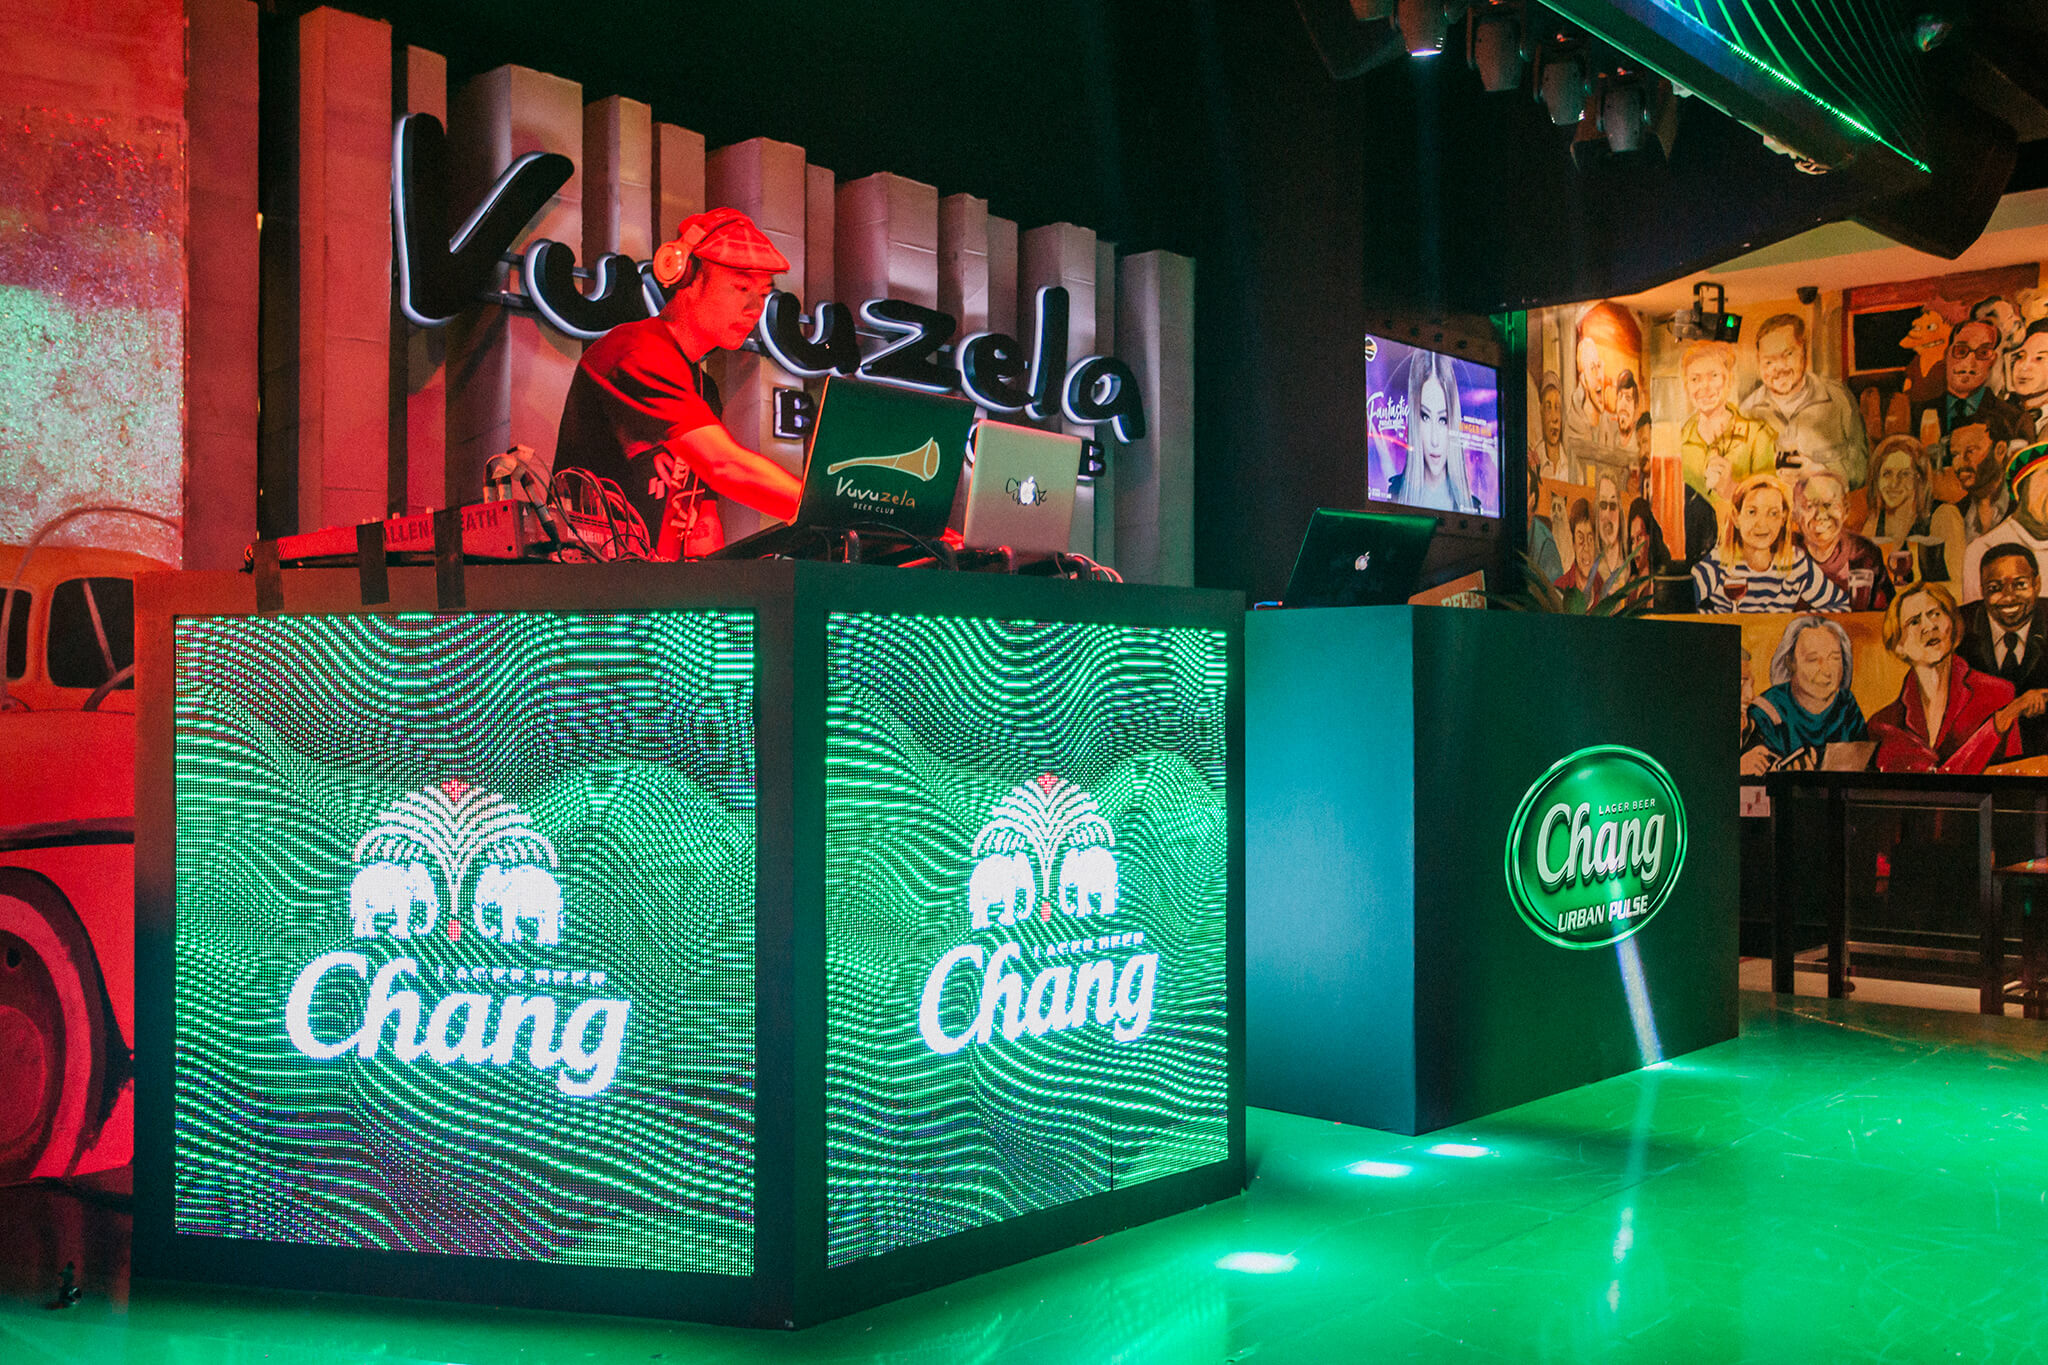 Chang Ho Chi Minh City's second event draws a big crowd - Chang